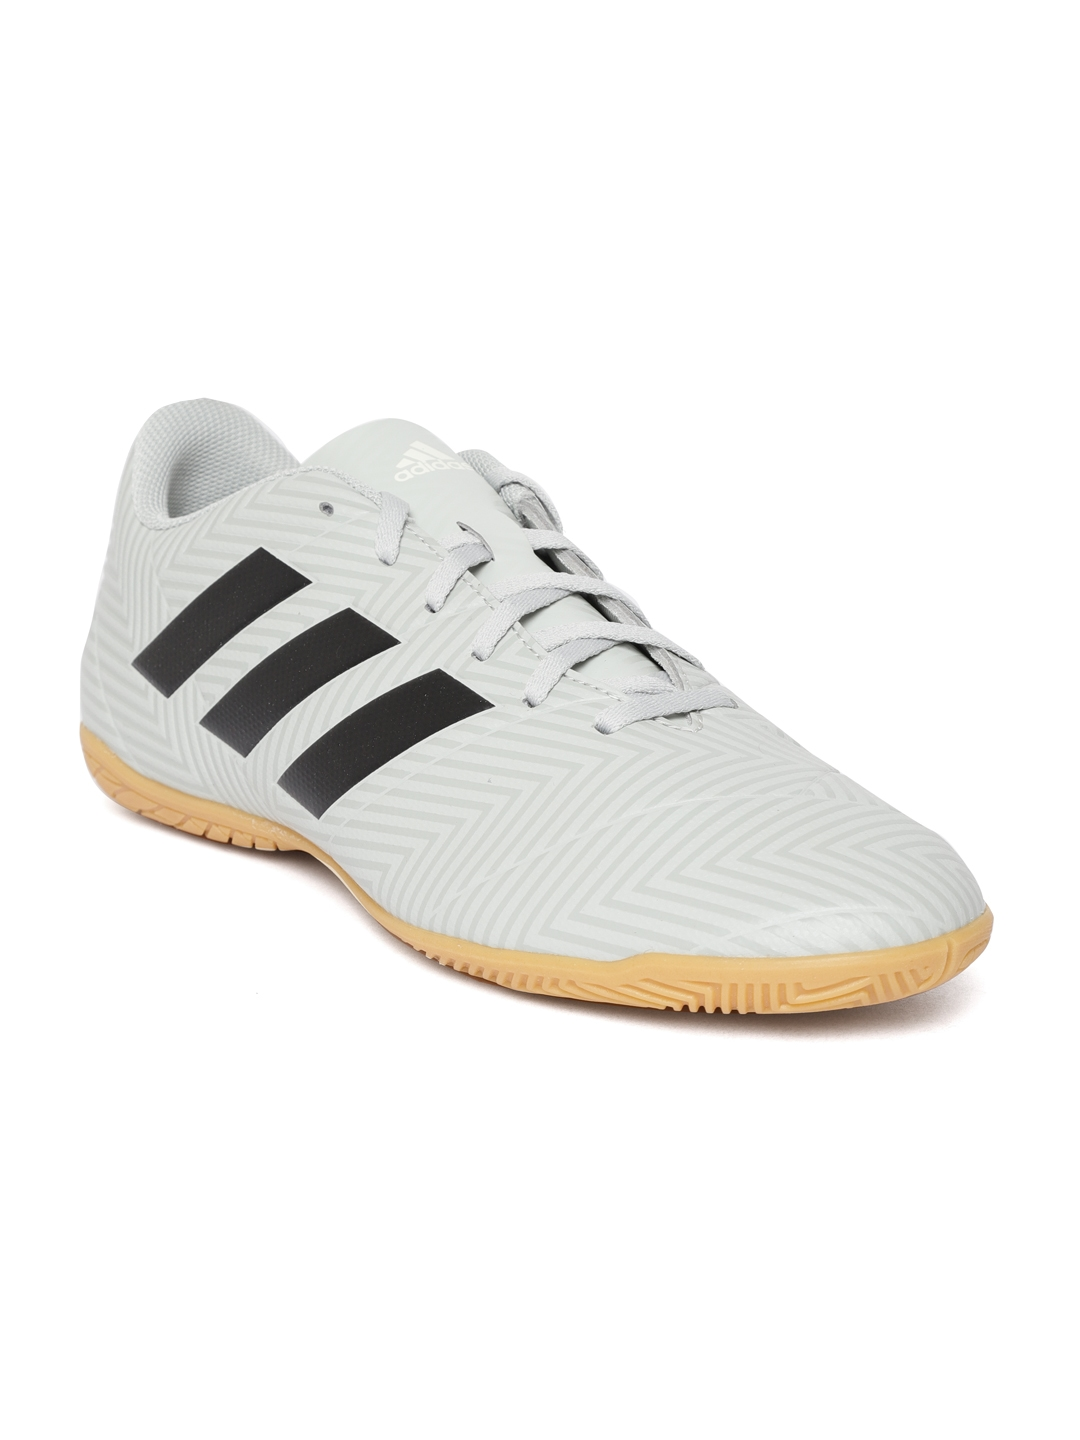 online retailer 4c722 8df54 ADIDAS Men Grey Nemeziz Tango 18.4 Indoor Football Shoes